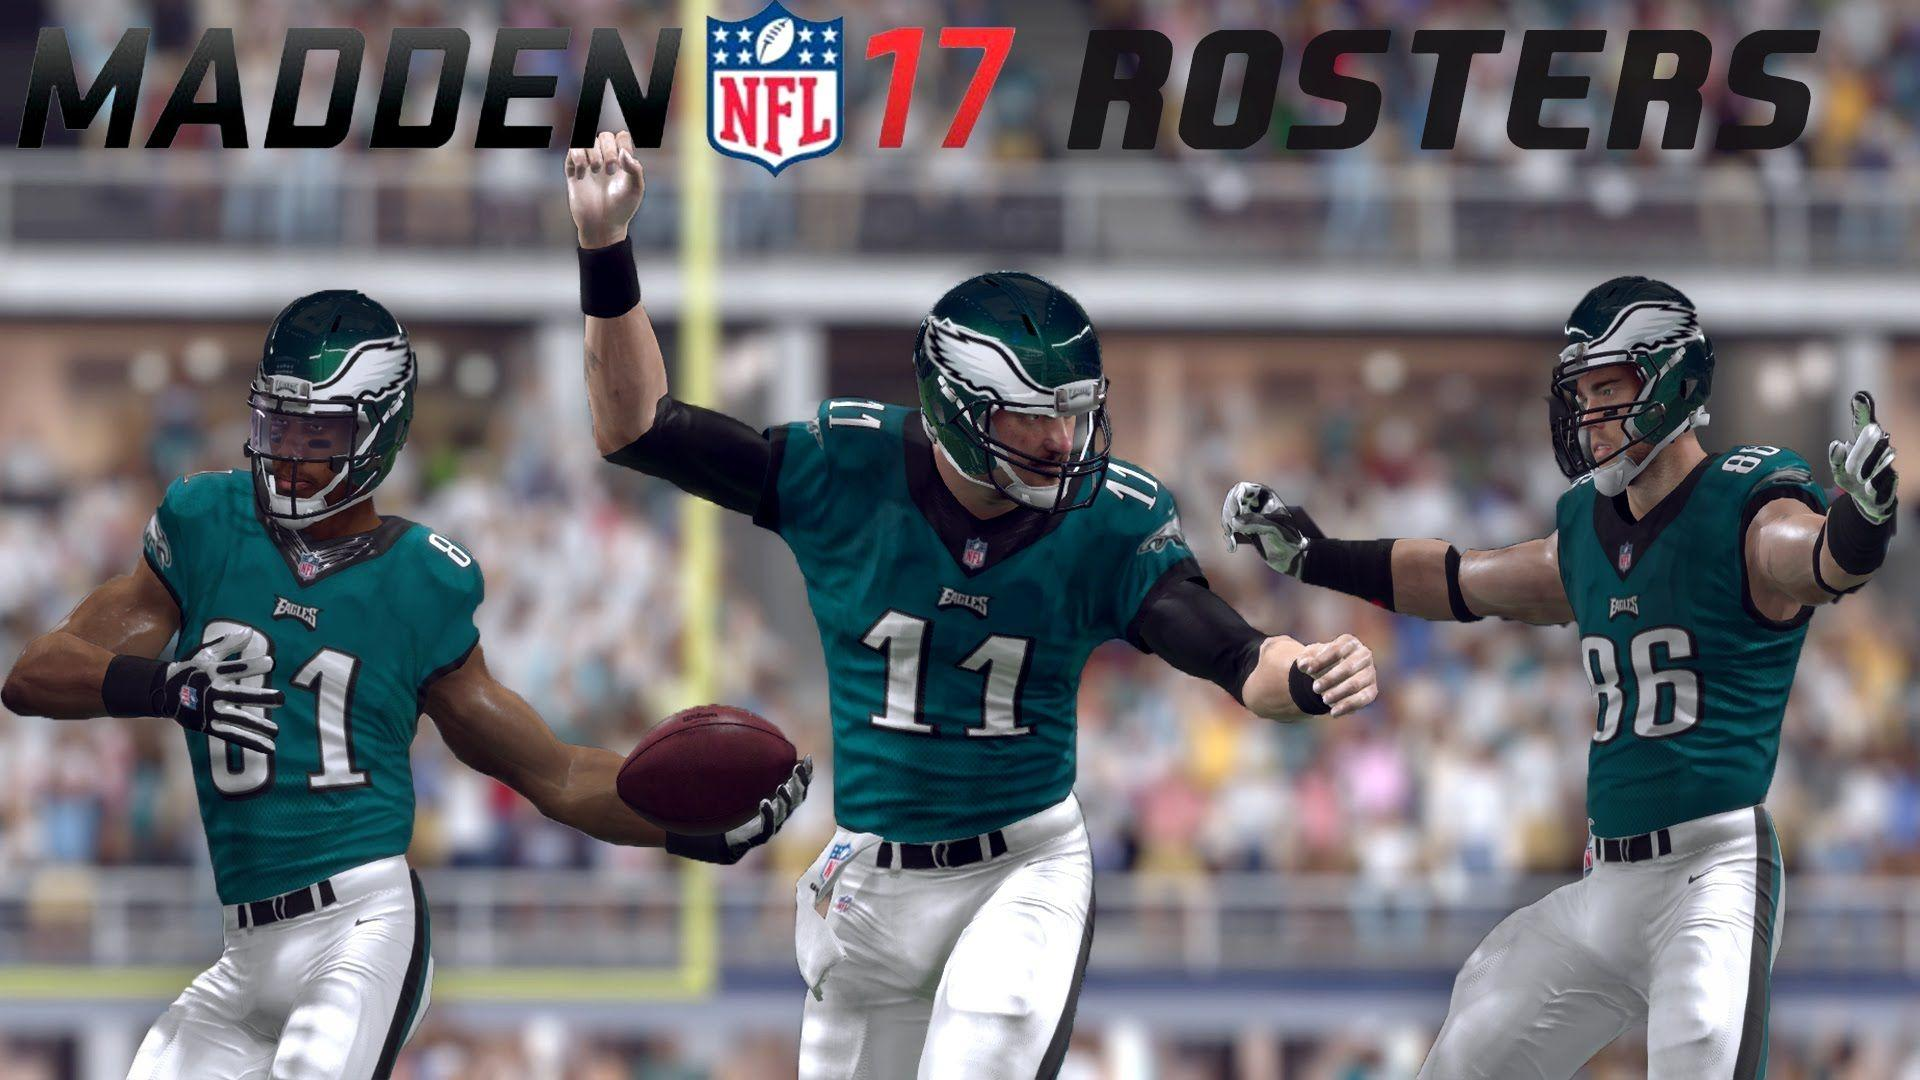 CARSON WENTZ'S 100% COMPLETION! EAGLES SUPERSTAR IN MADDEN 17 ...